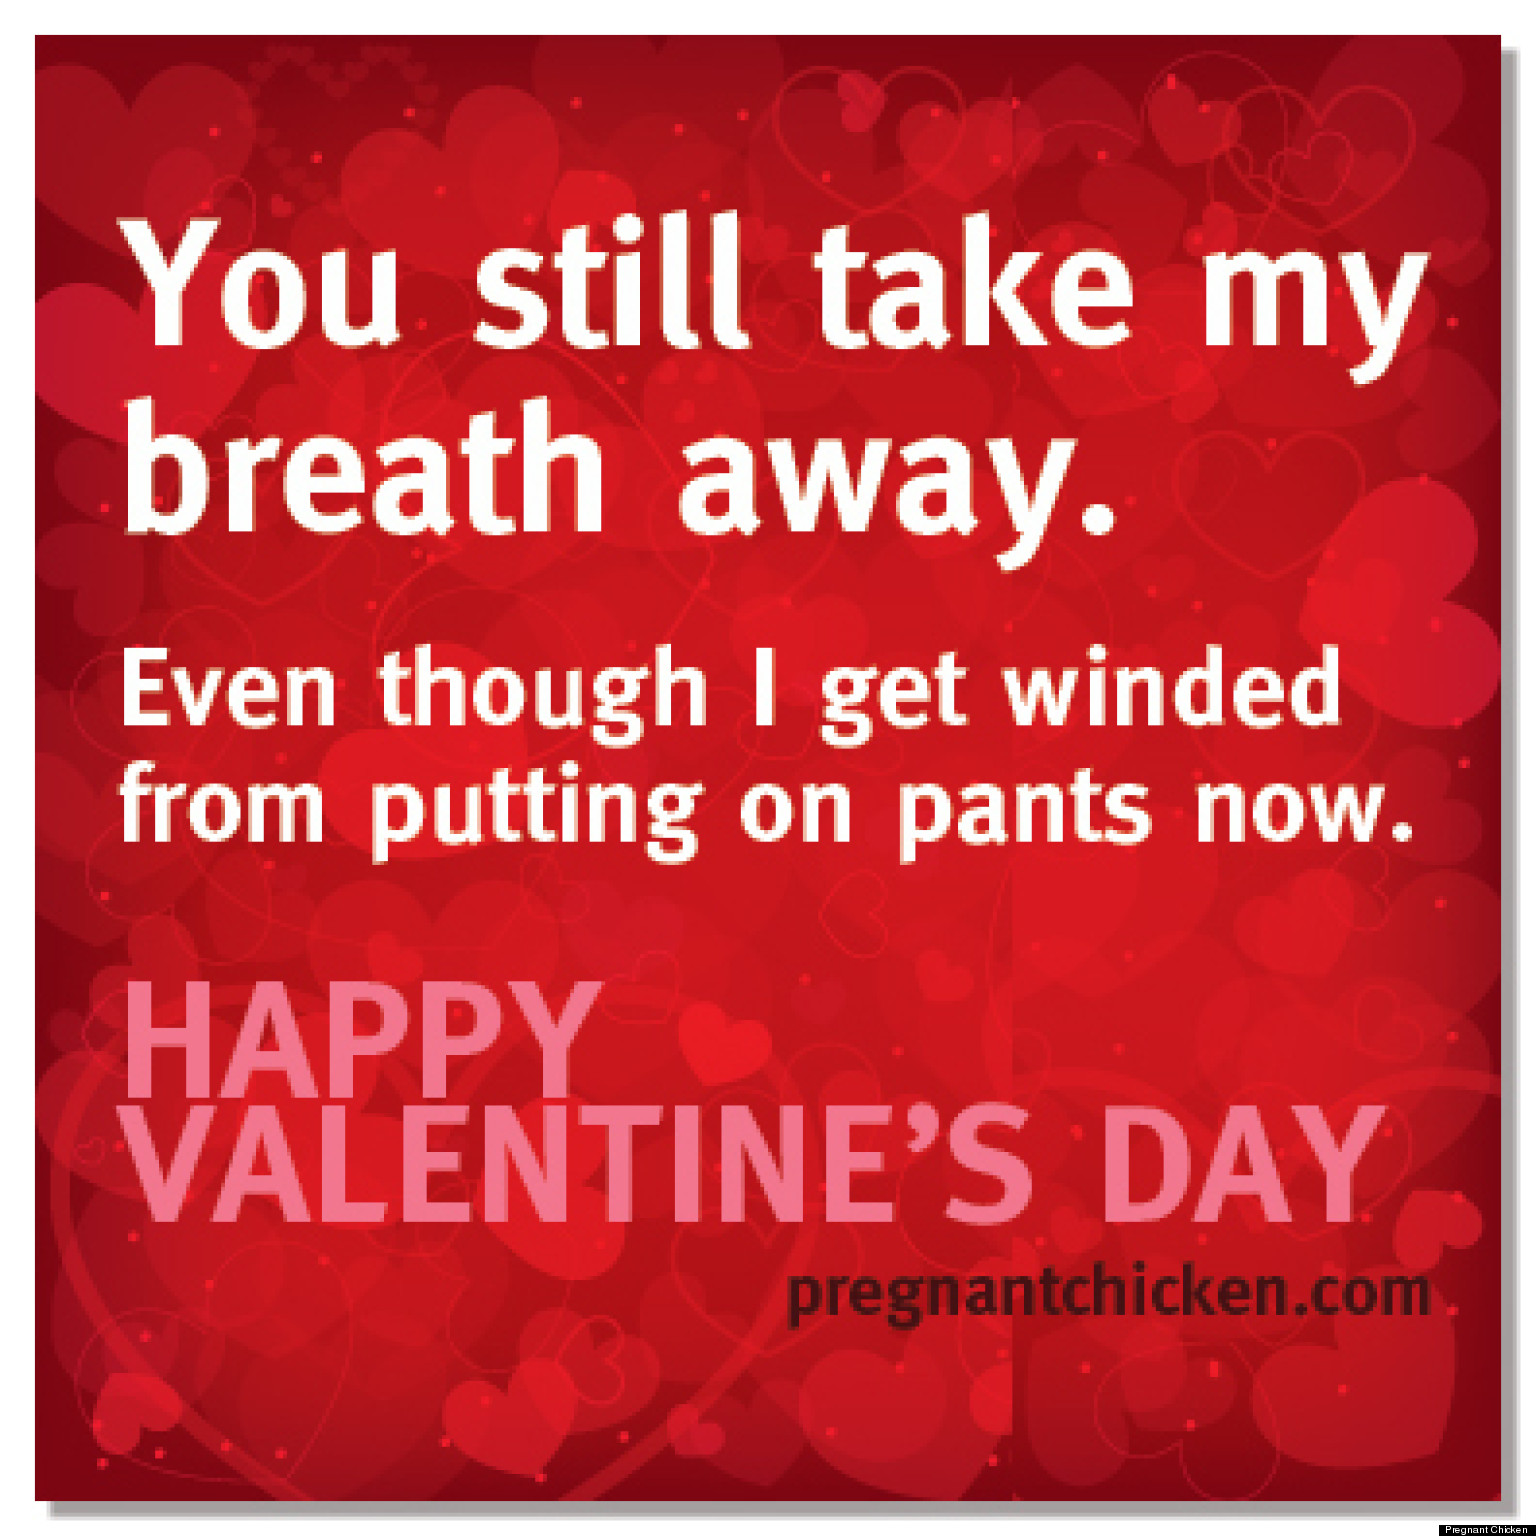 Valentines Day Quotes For Wife: Funny Valentines For Pregnant Women To Give Their Partners